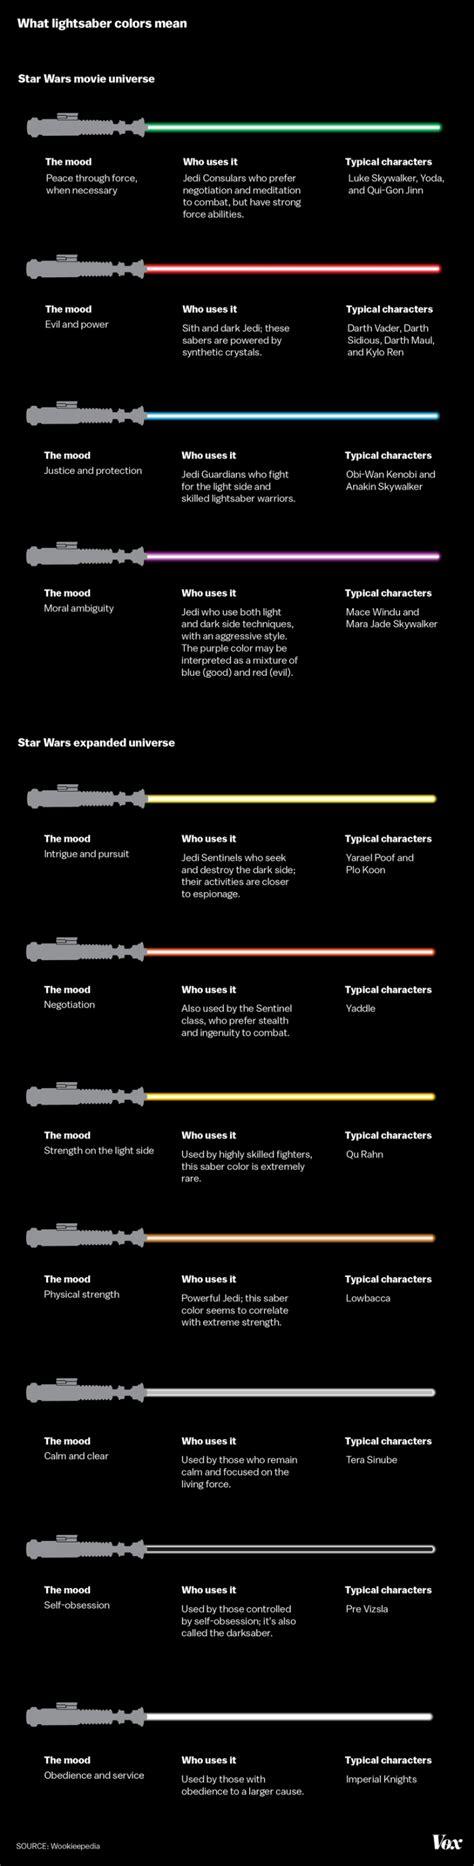 lightsaber colors and meaning wars lightsaber colors what they and who uses